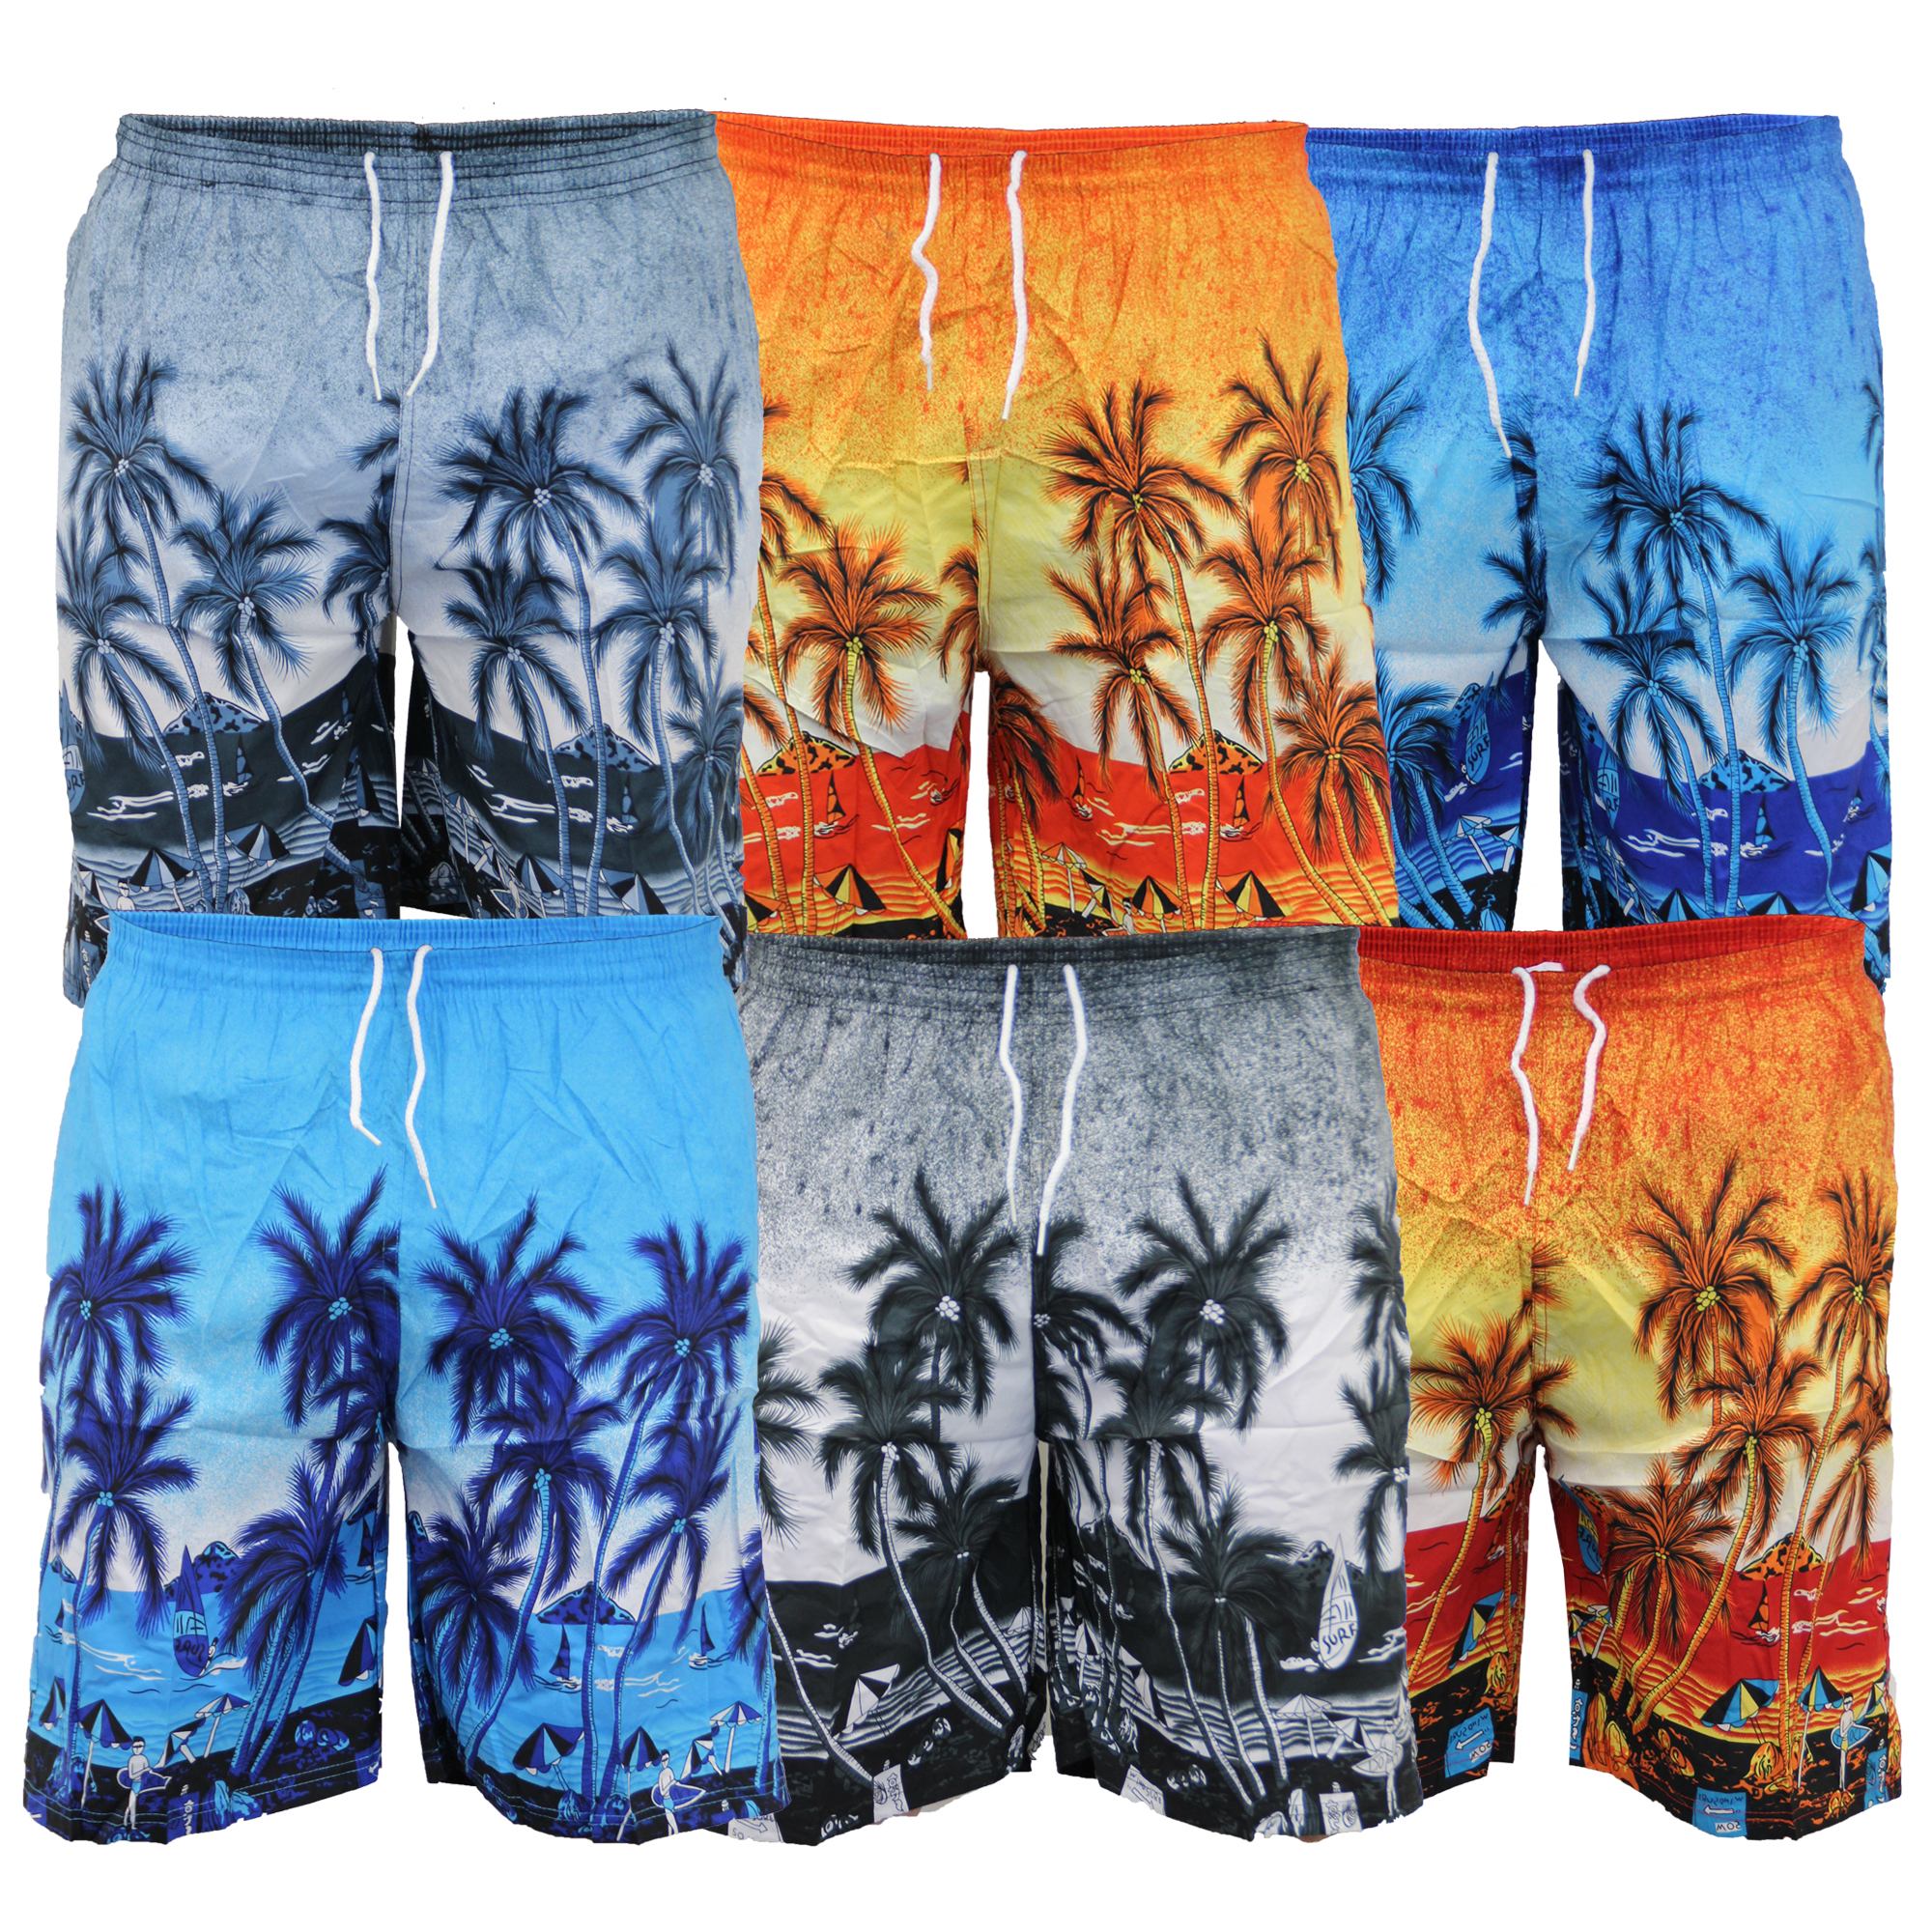 c99779a08bb Mens Hawaiian Swimming Shorts Beach Trunks Palm Print Surf Board ...